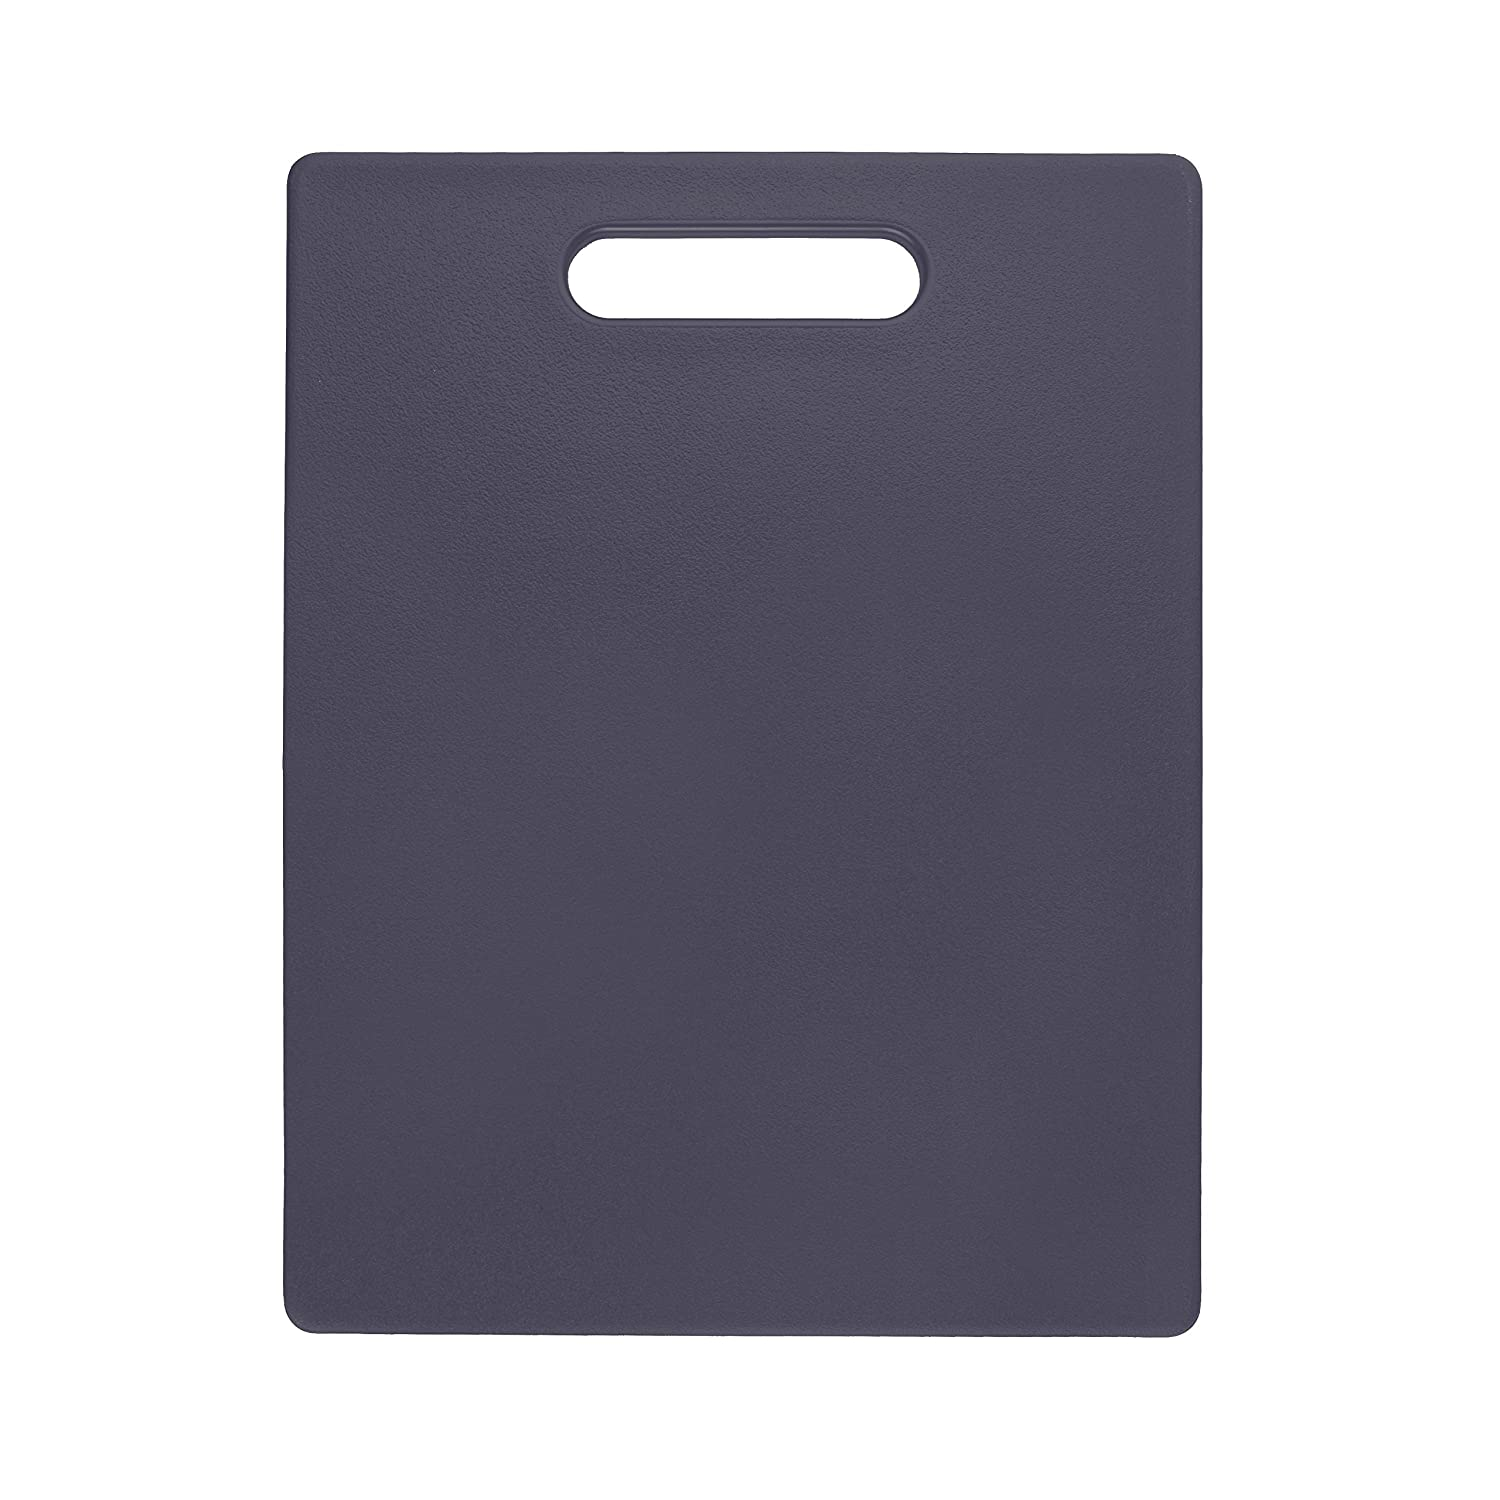 Dexas Classic Jelli Cutting Board with Handle, 6 by 10 inches, Gray 409-J432